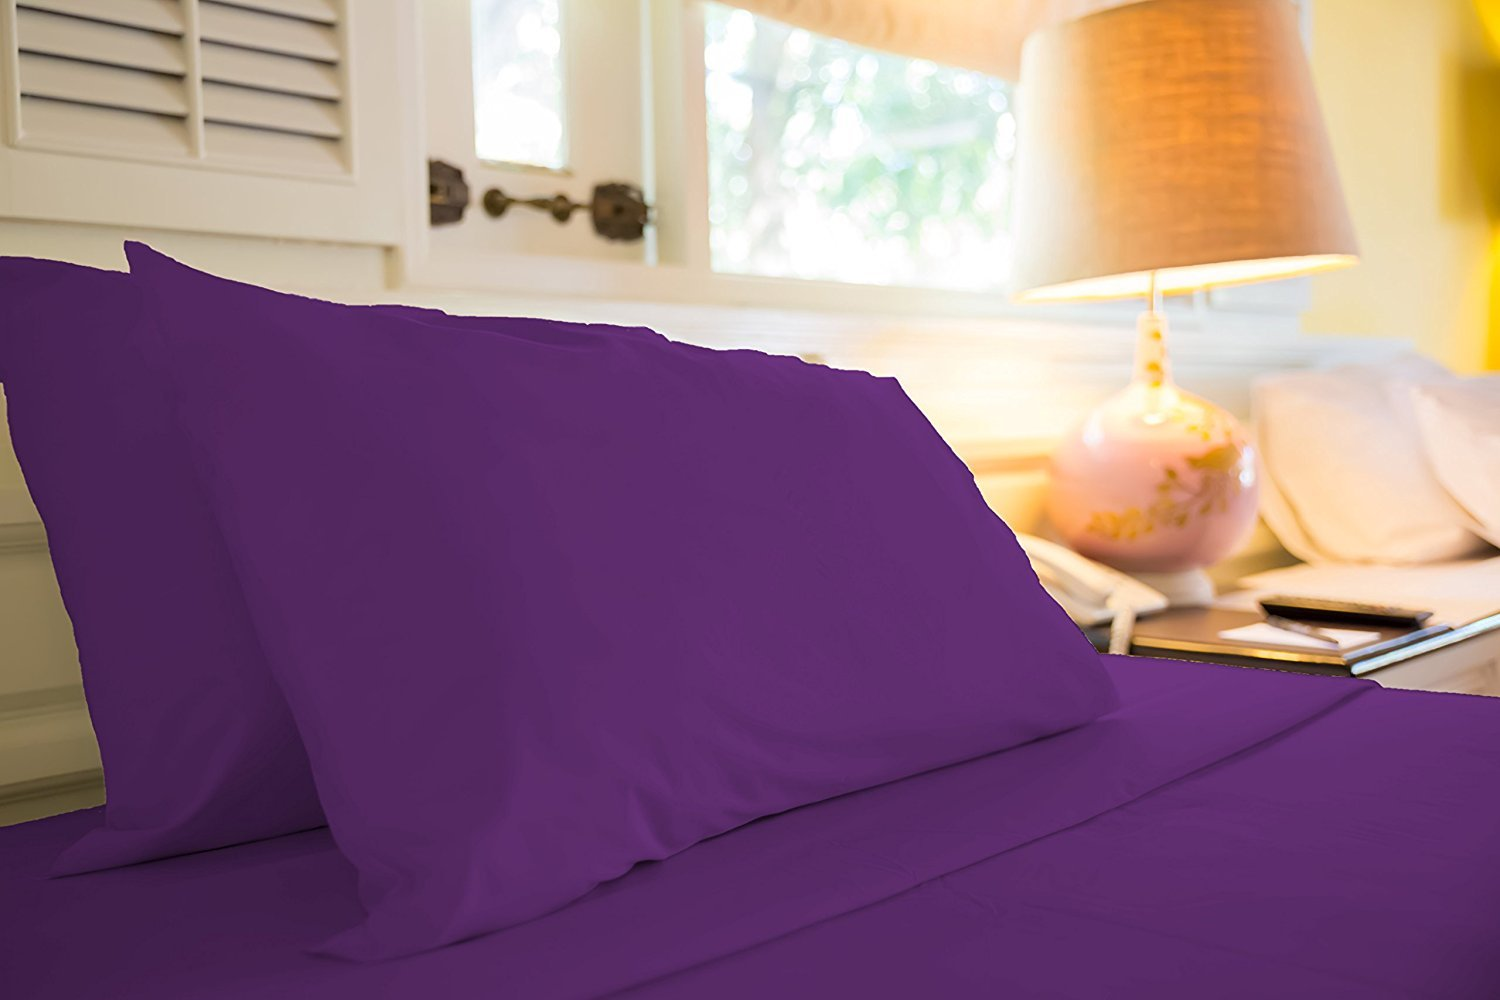 Jessica Snow Bed Sheet Set 4 Piece King, Eggplant